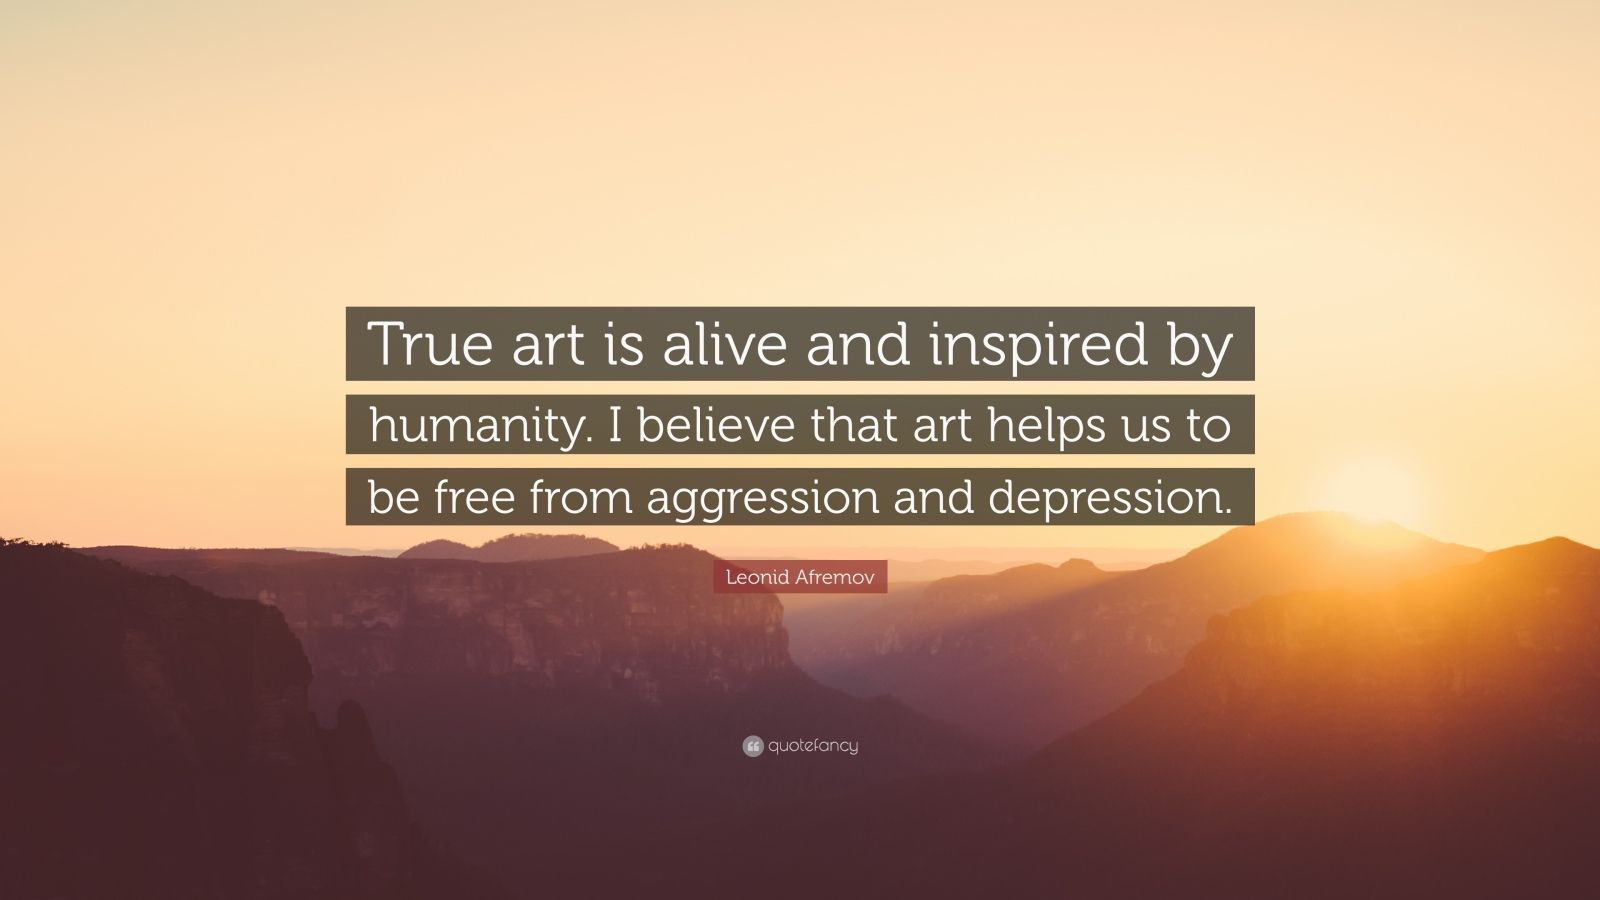 leonid afremov quote true art is alive and inspired by